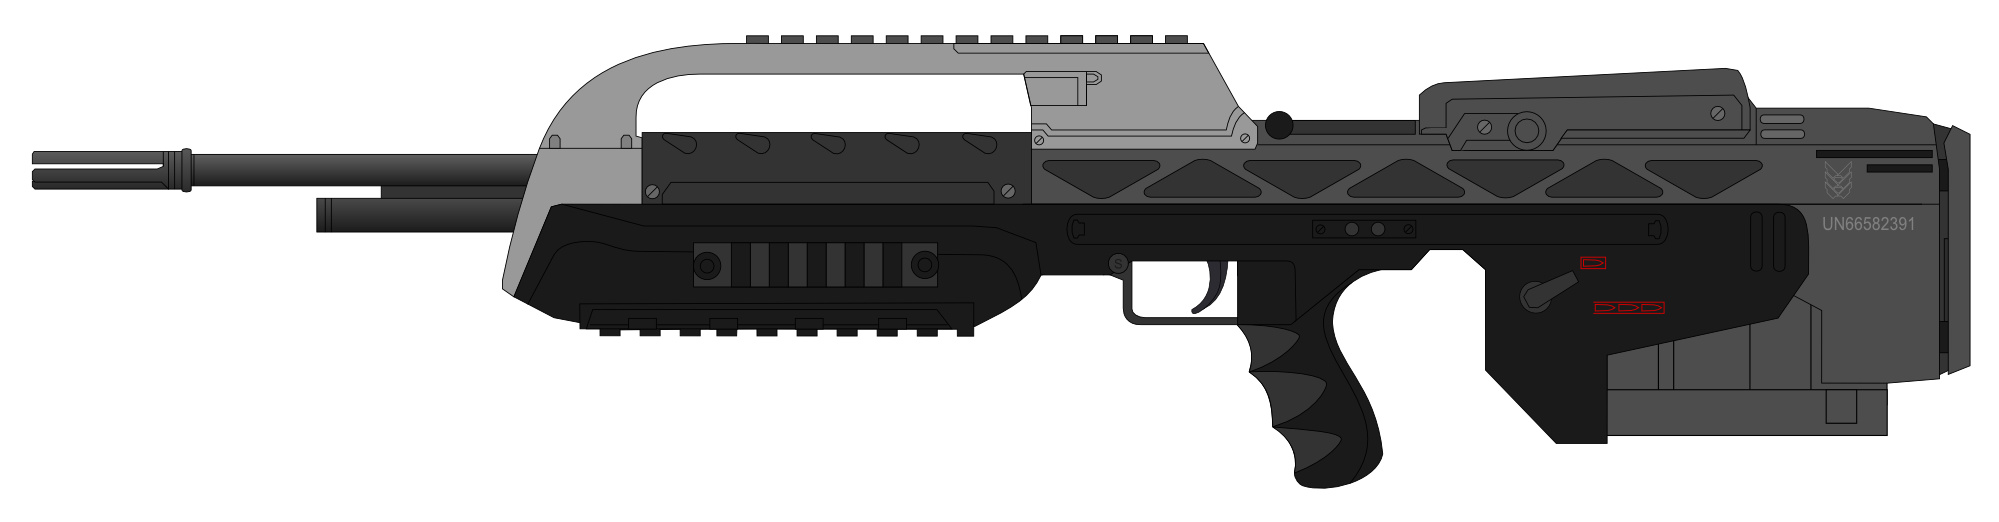 BR60 Battle Rifle.png